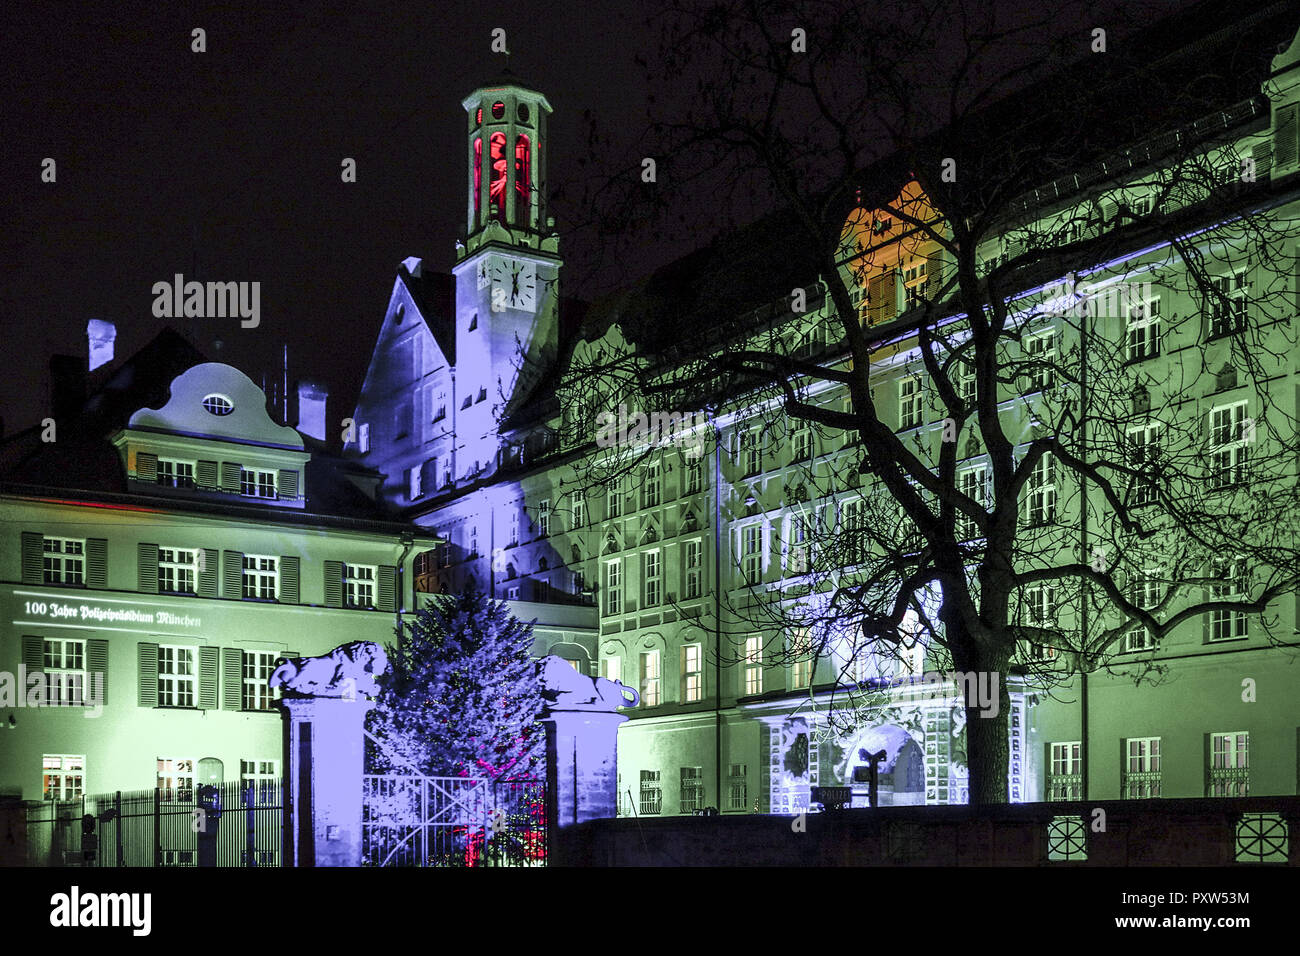 Beleuchtetes Bild Farbig Beleuchtetes Polizeipräsidium In München, Löwengrube, Colored Lighted Police Headquarters In Munich At Night, Germany, Bavaria, Munich, Police Stock Photo - Alamy